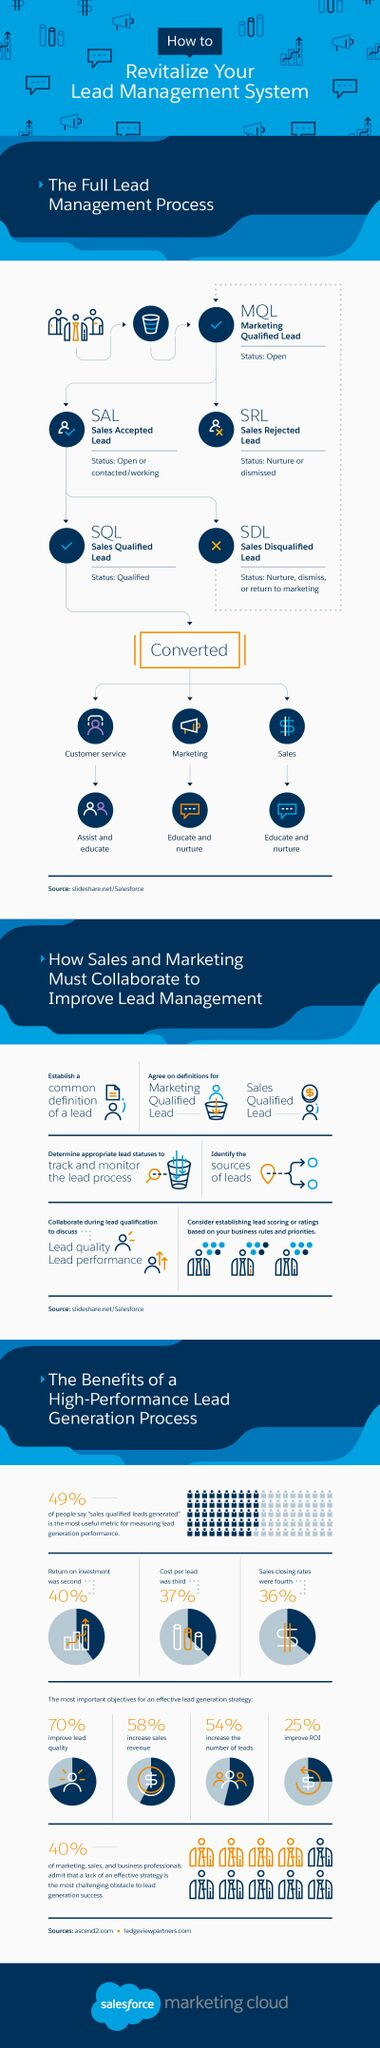 How to Revitalize Your Lead Management System - Salesforce